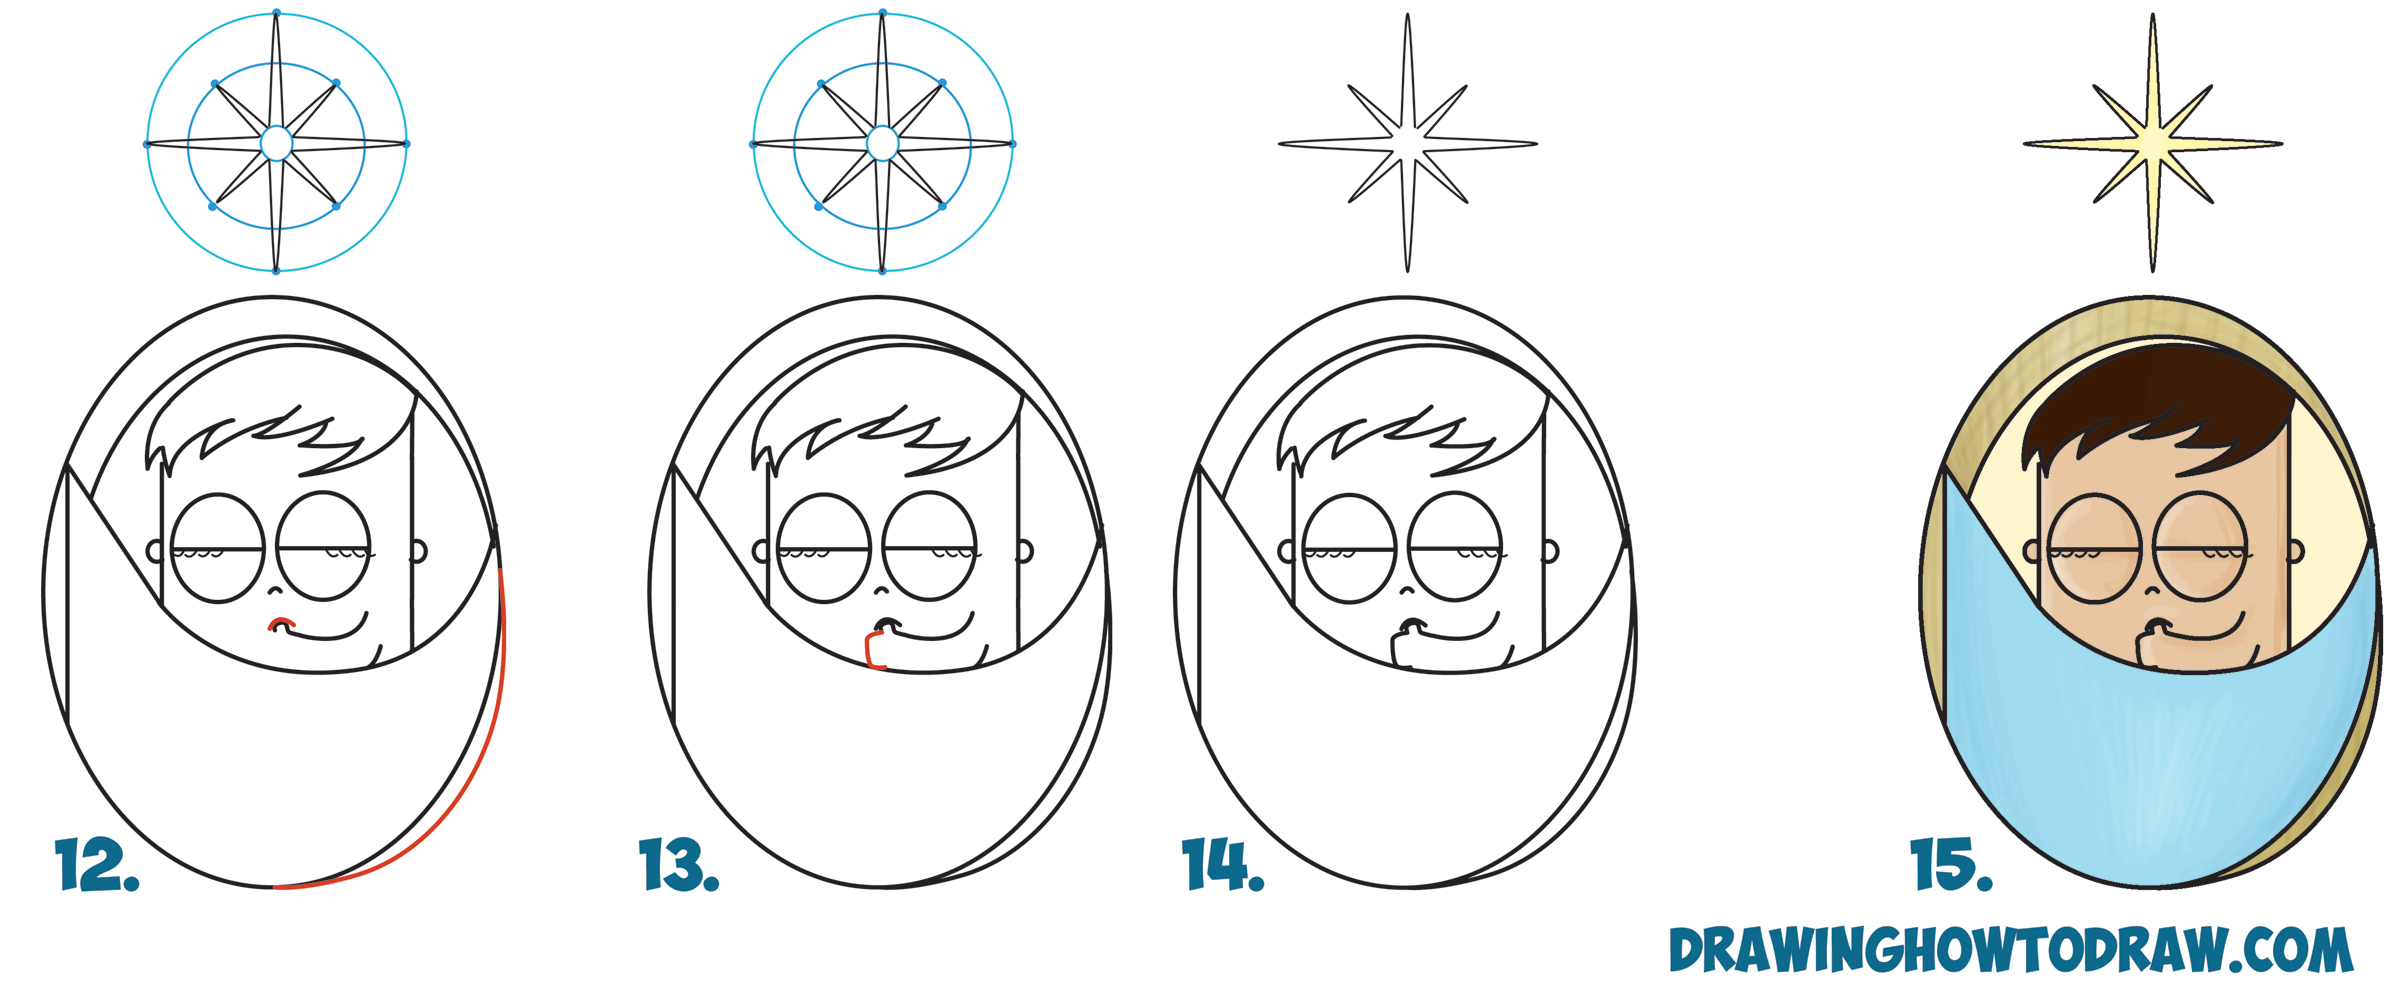 "Learn How to Draw Cute Cartoon Baby Jesus Sleeping Under the North Star from the Word ""Noel"" - Simple Step by Step Christmas Drawing Tutorial for Kids"